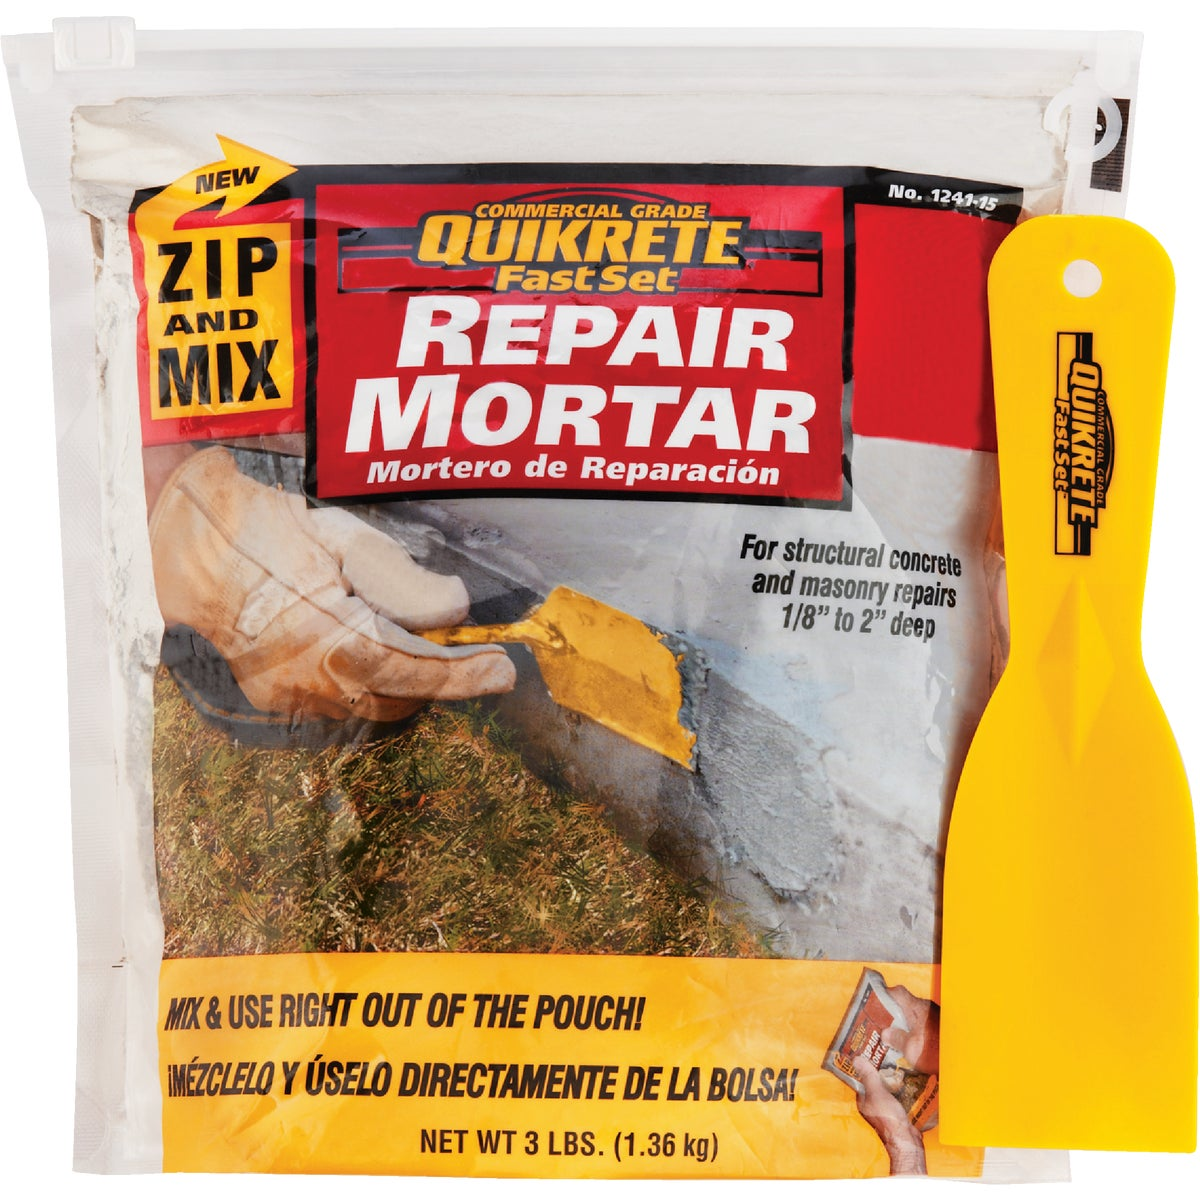 3LB ZIP & MIX RPR MORTAR